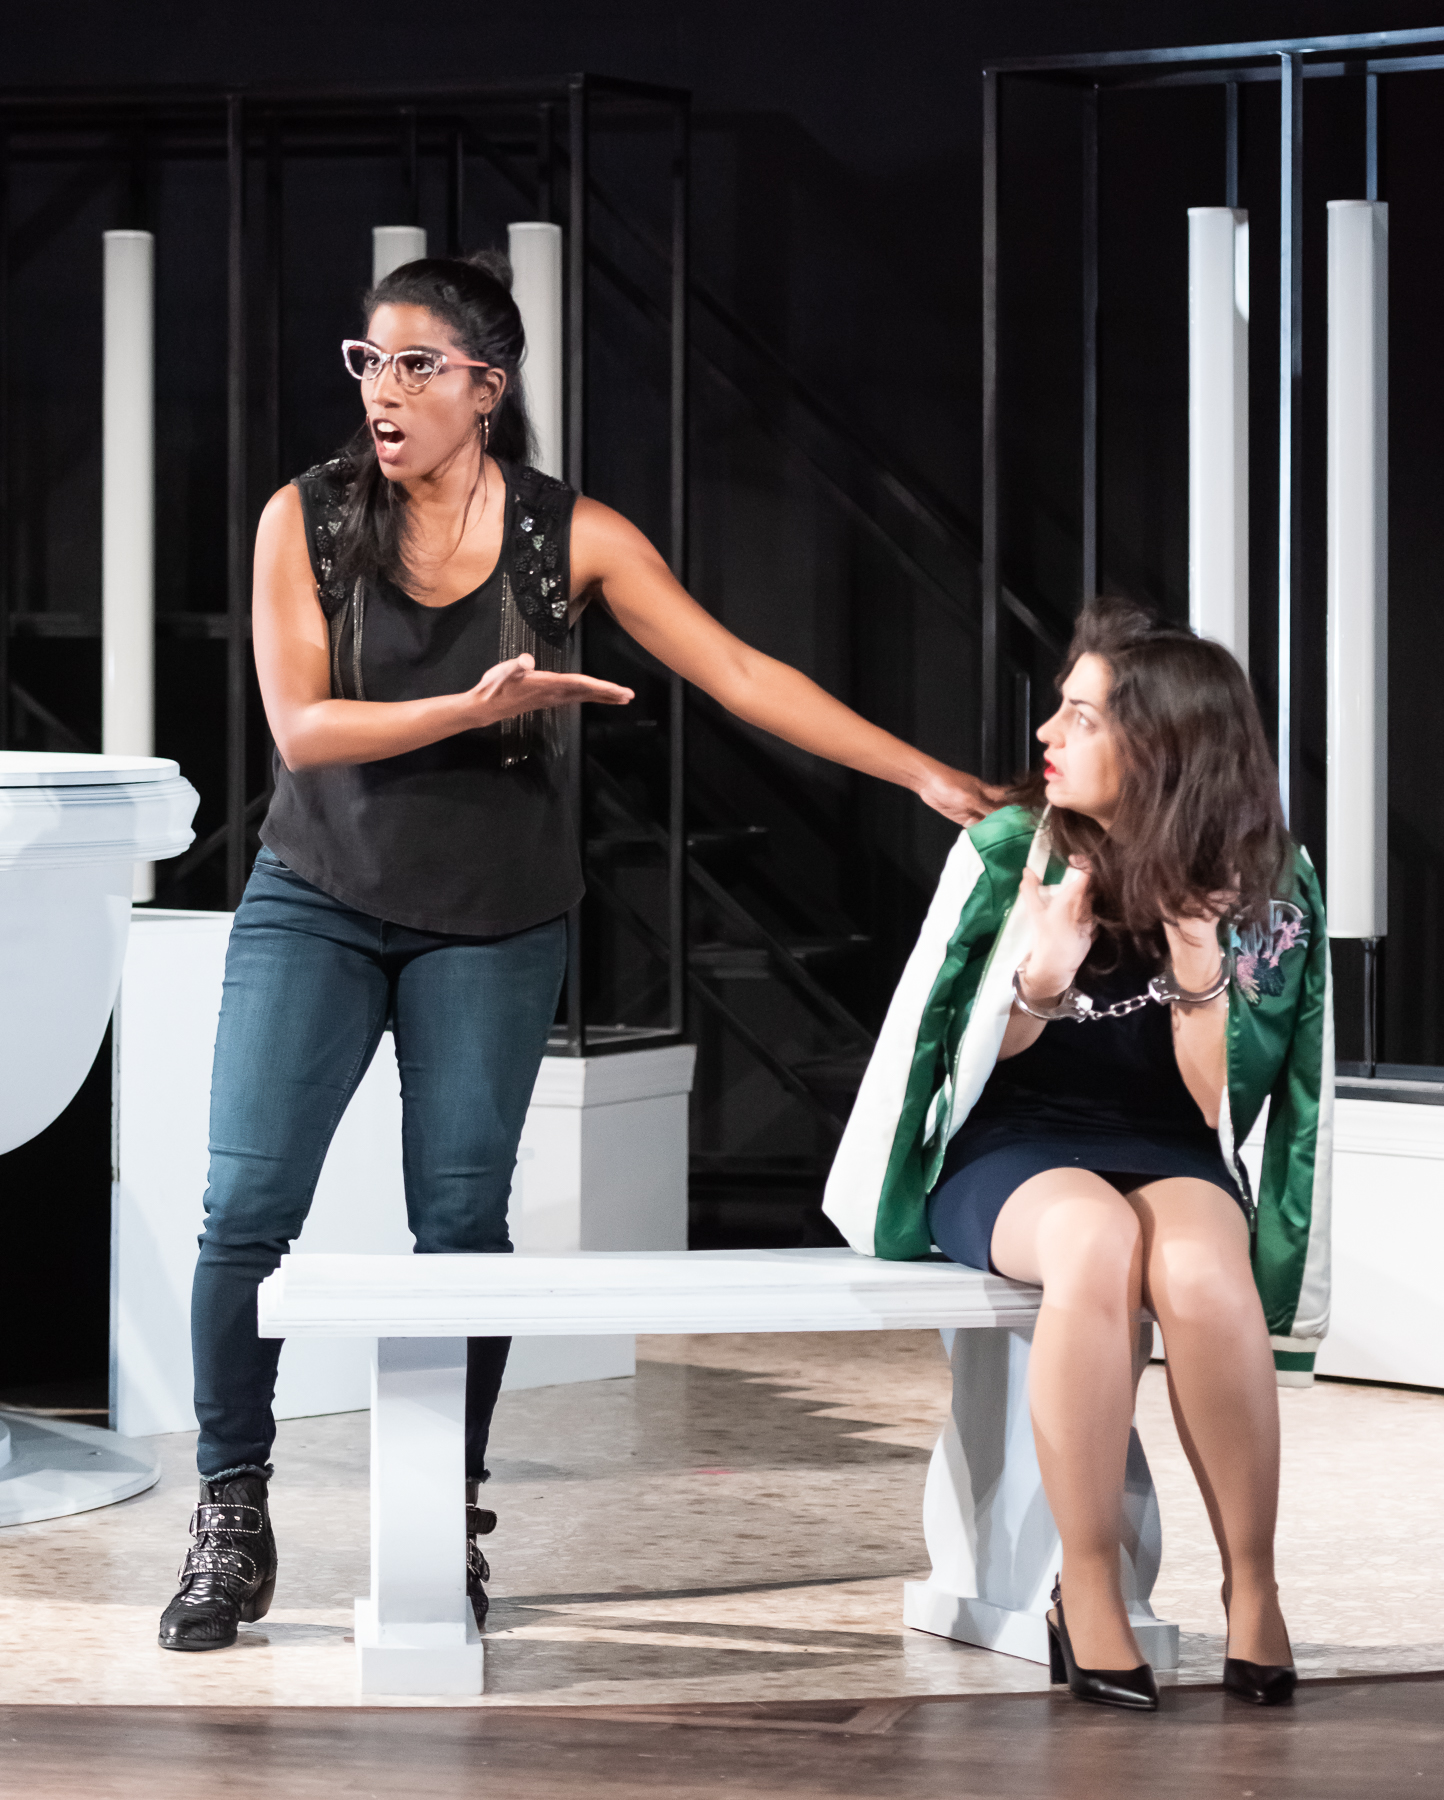 Daniel (Ariana Douglas) comes to Susanna's (Lucia Martín Cardón) defense. Photo by Louis Forget; courtesy of Opera Lafayette.